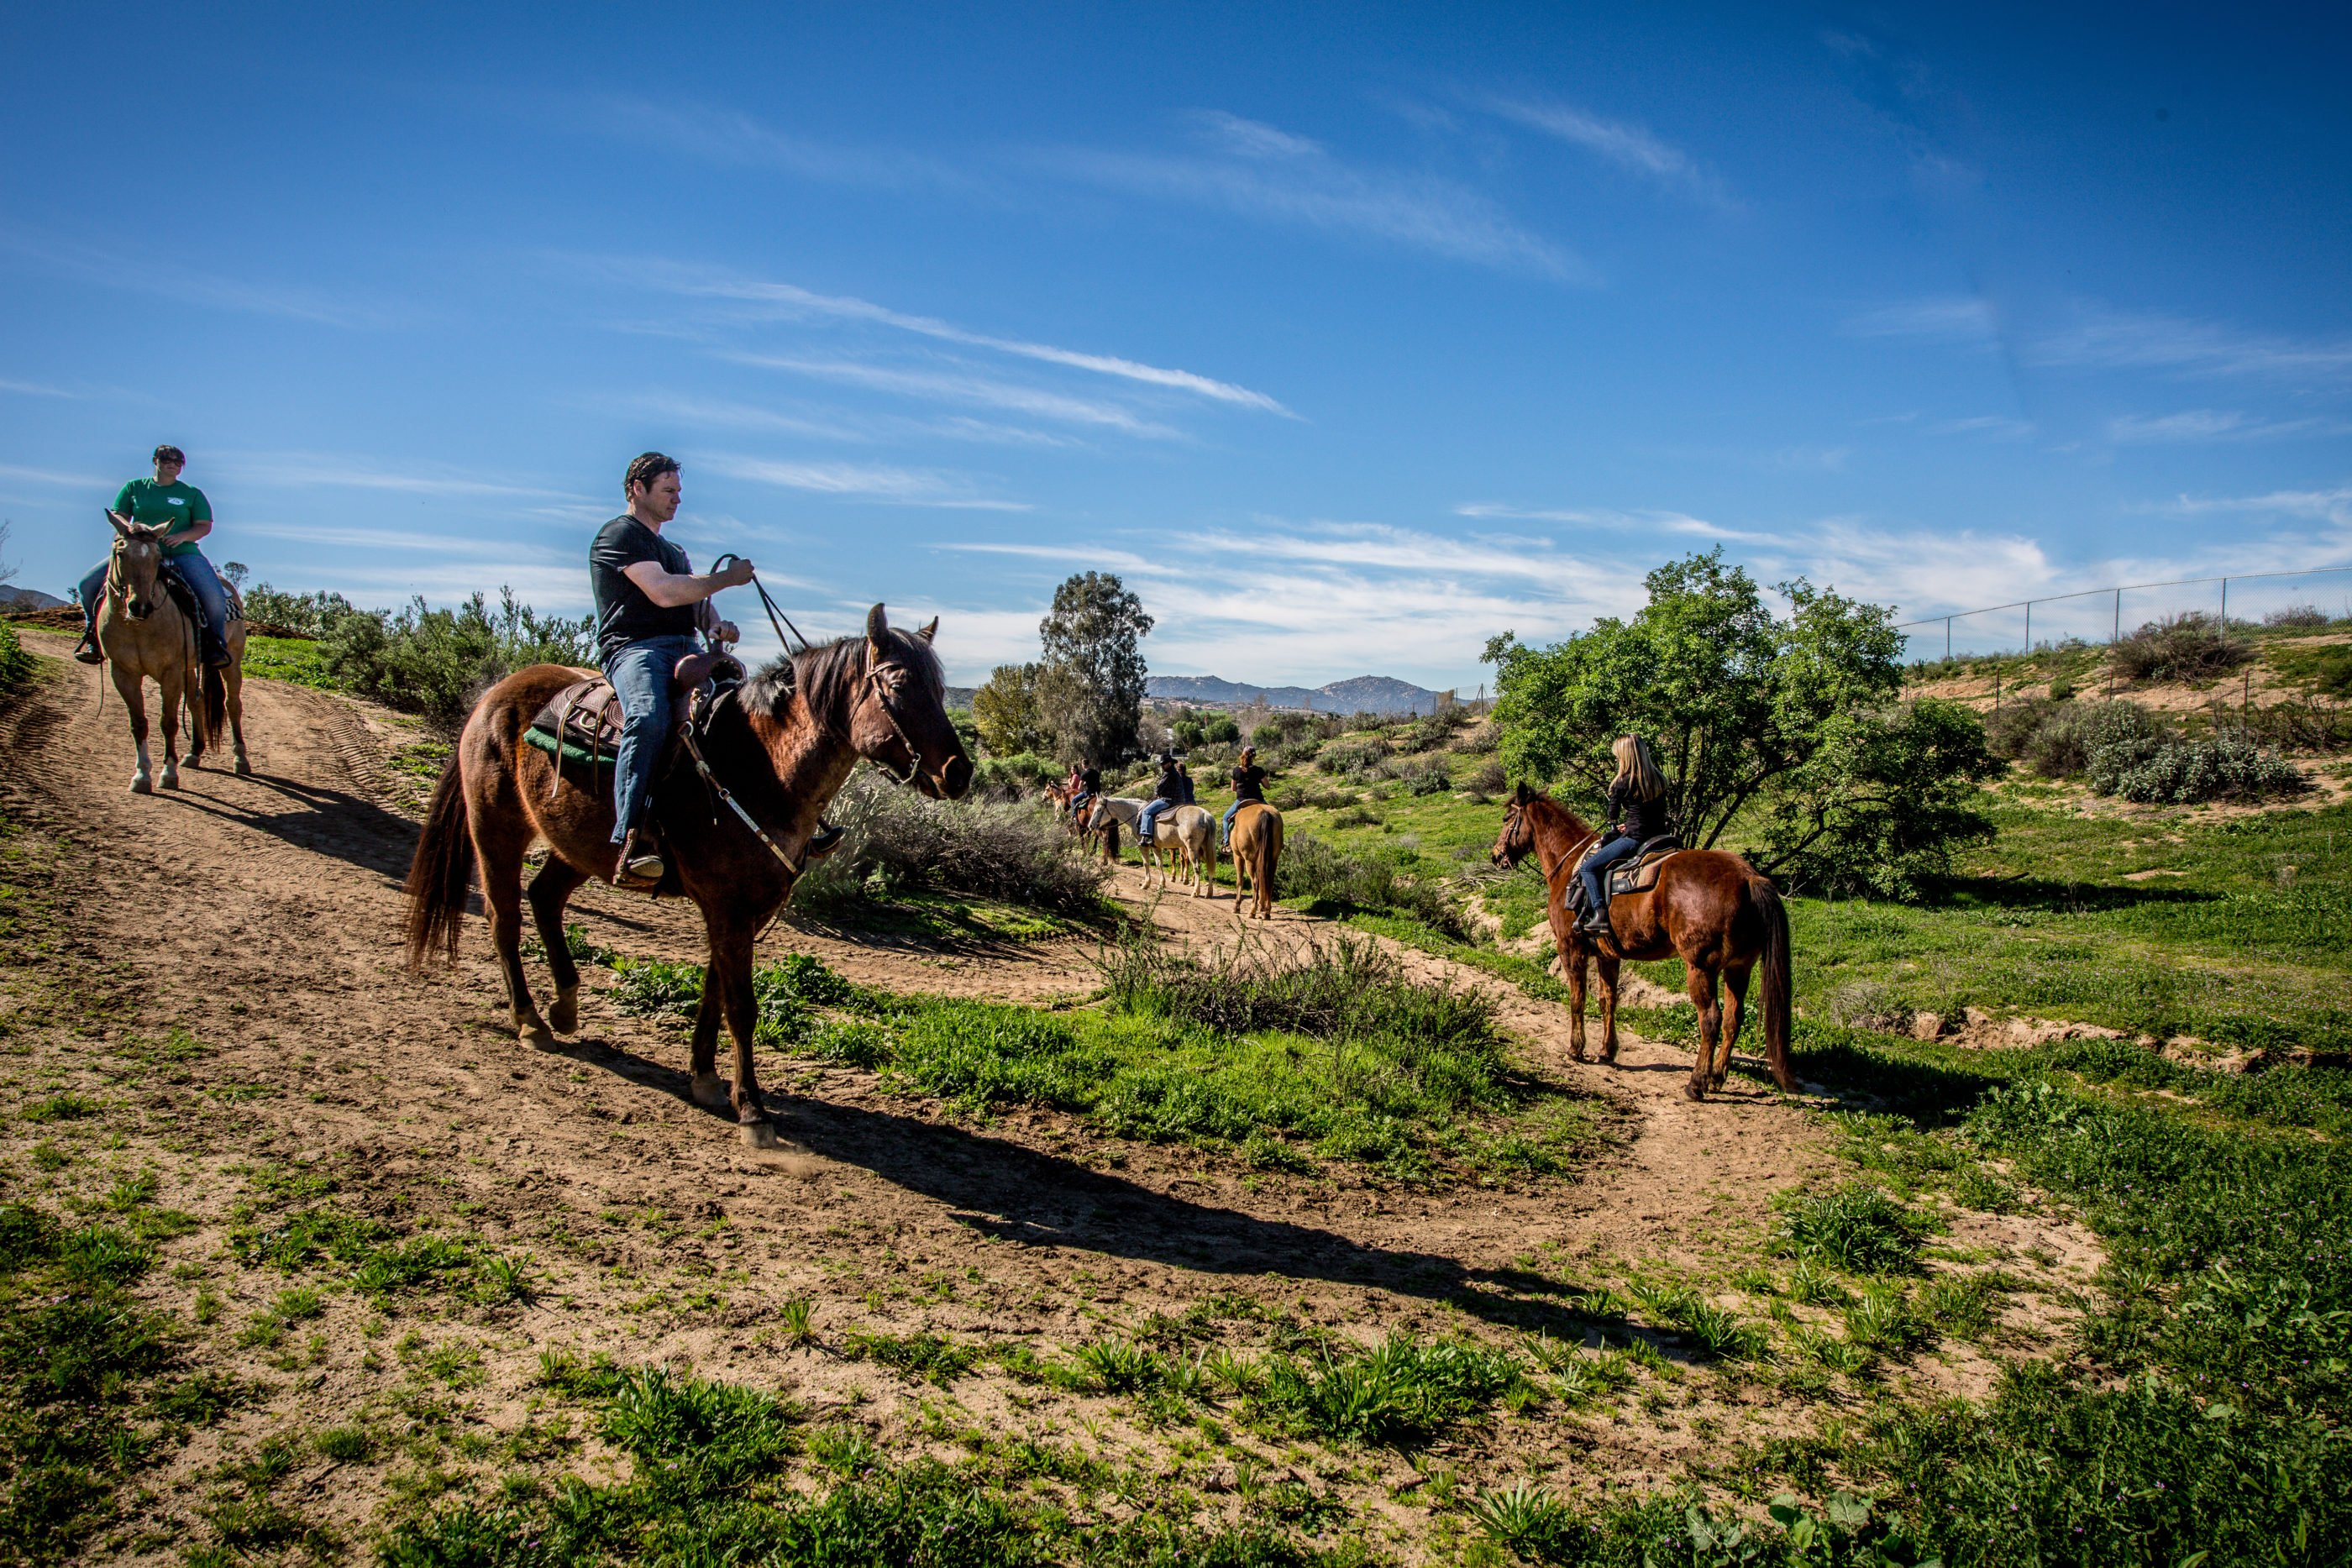 A group horseback riding on a trail in Temecula Valley.